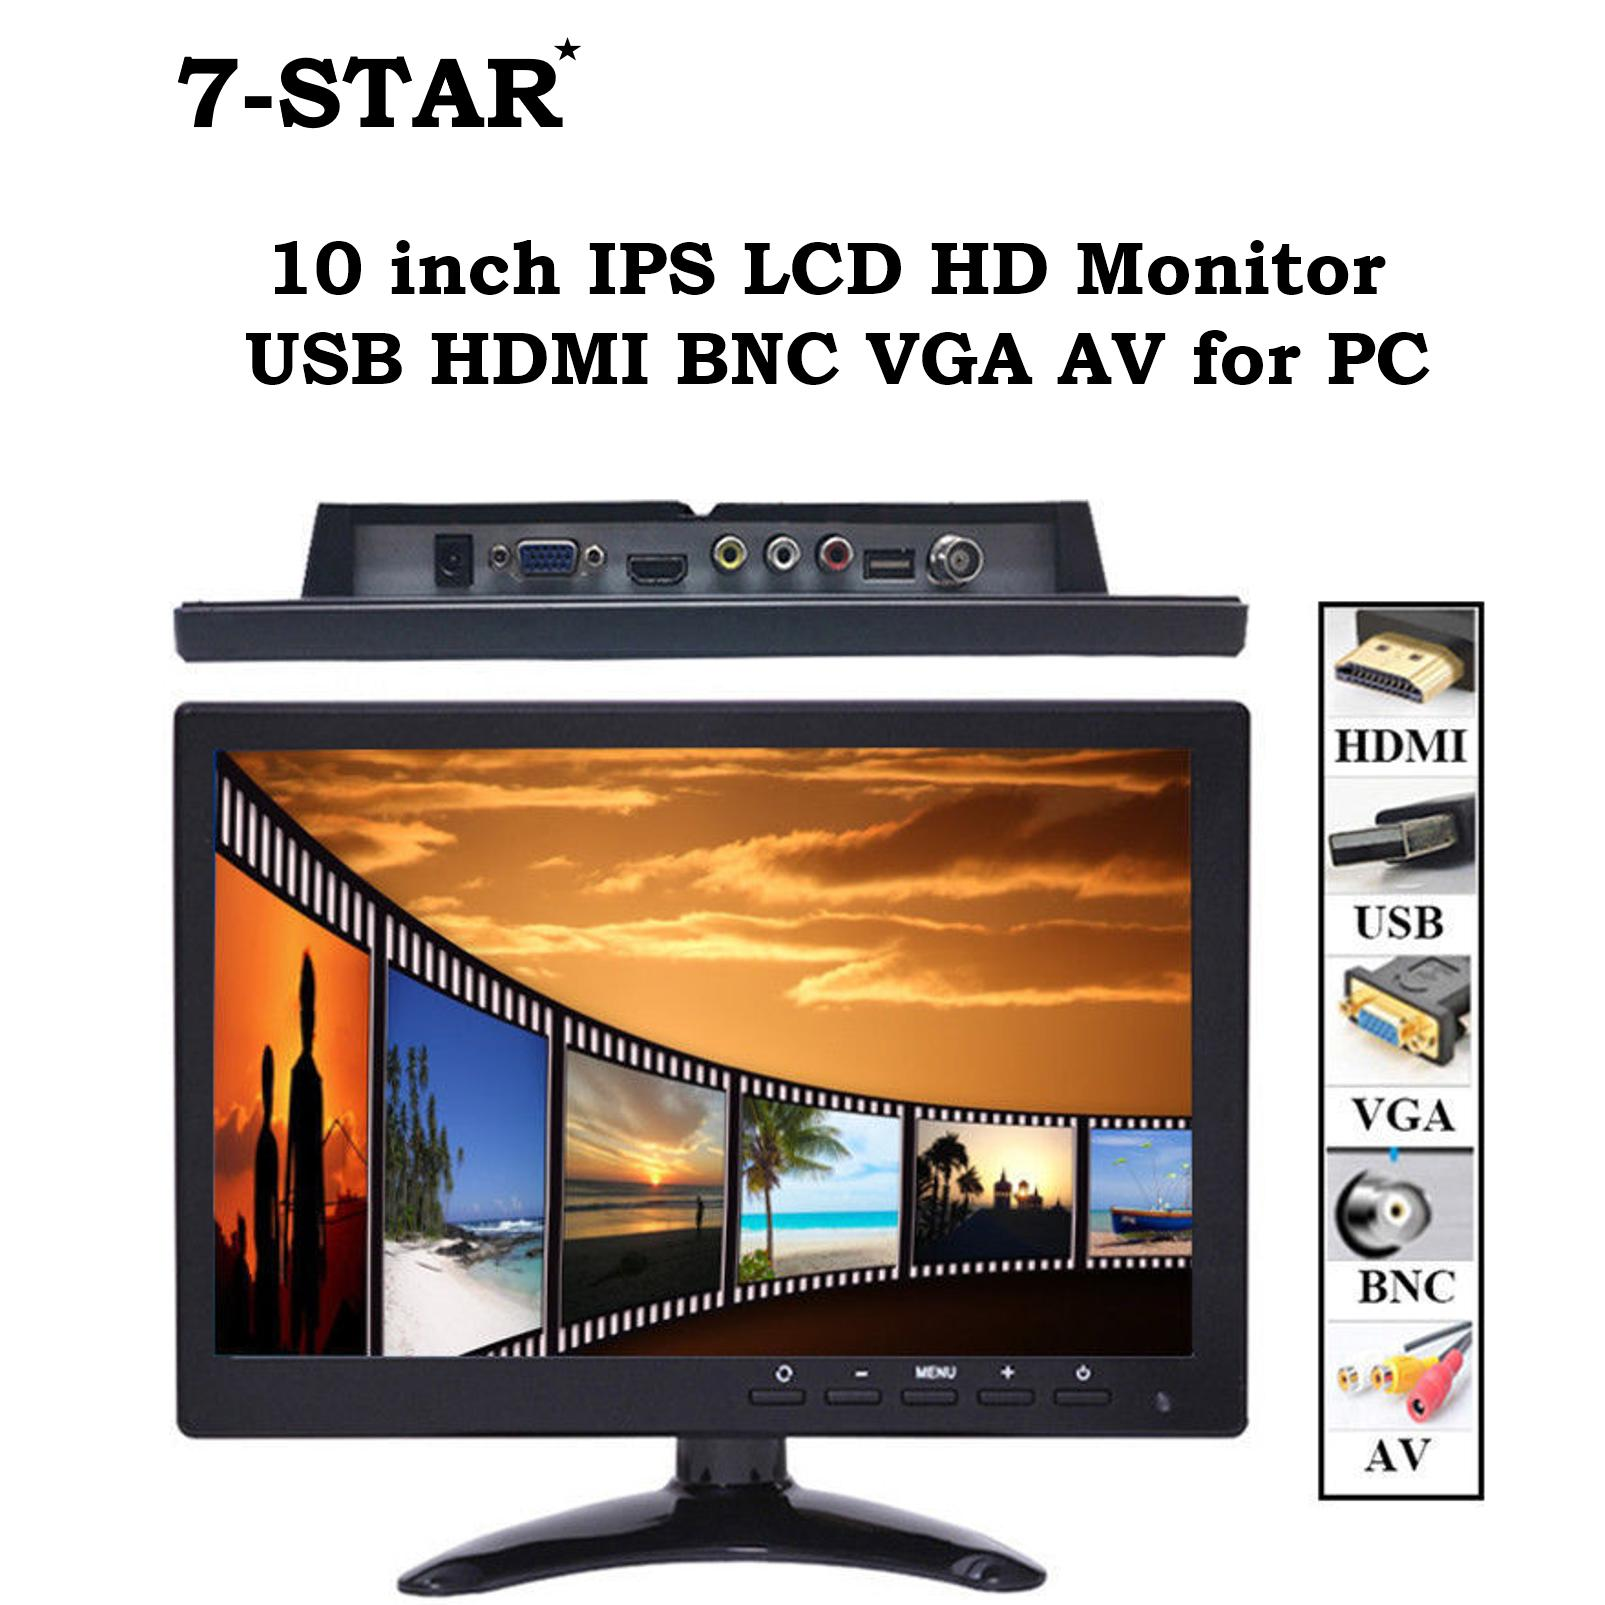 Discount 10 Inch Ips Lcd Hd Led Monitor Usb Hdmi Bnc Vga Av For Pc 10Inch Led Cctv Monitor With Speaker 7 Star